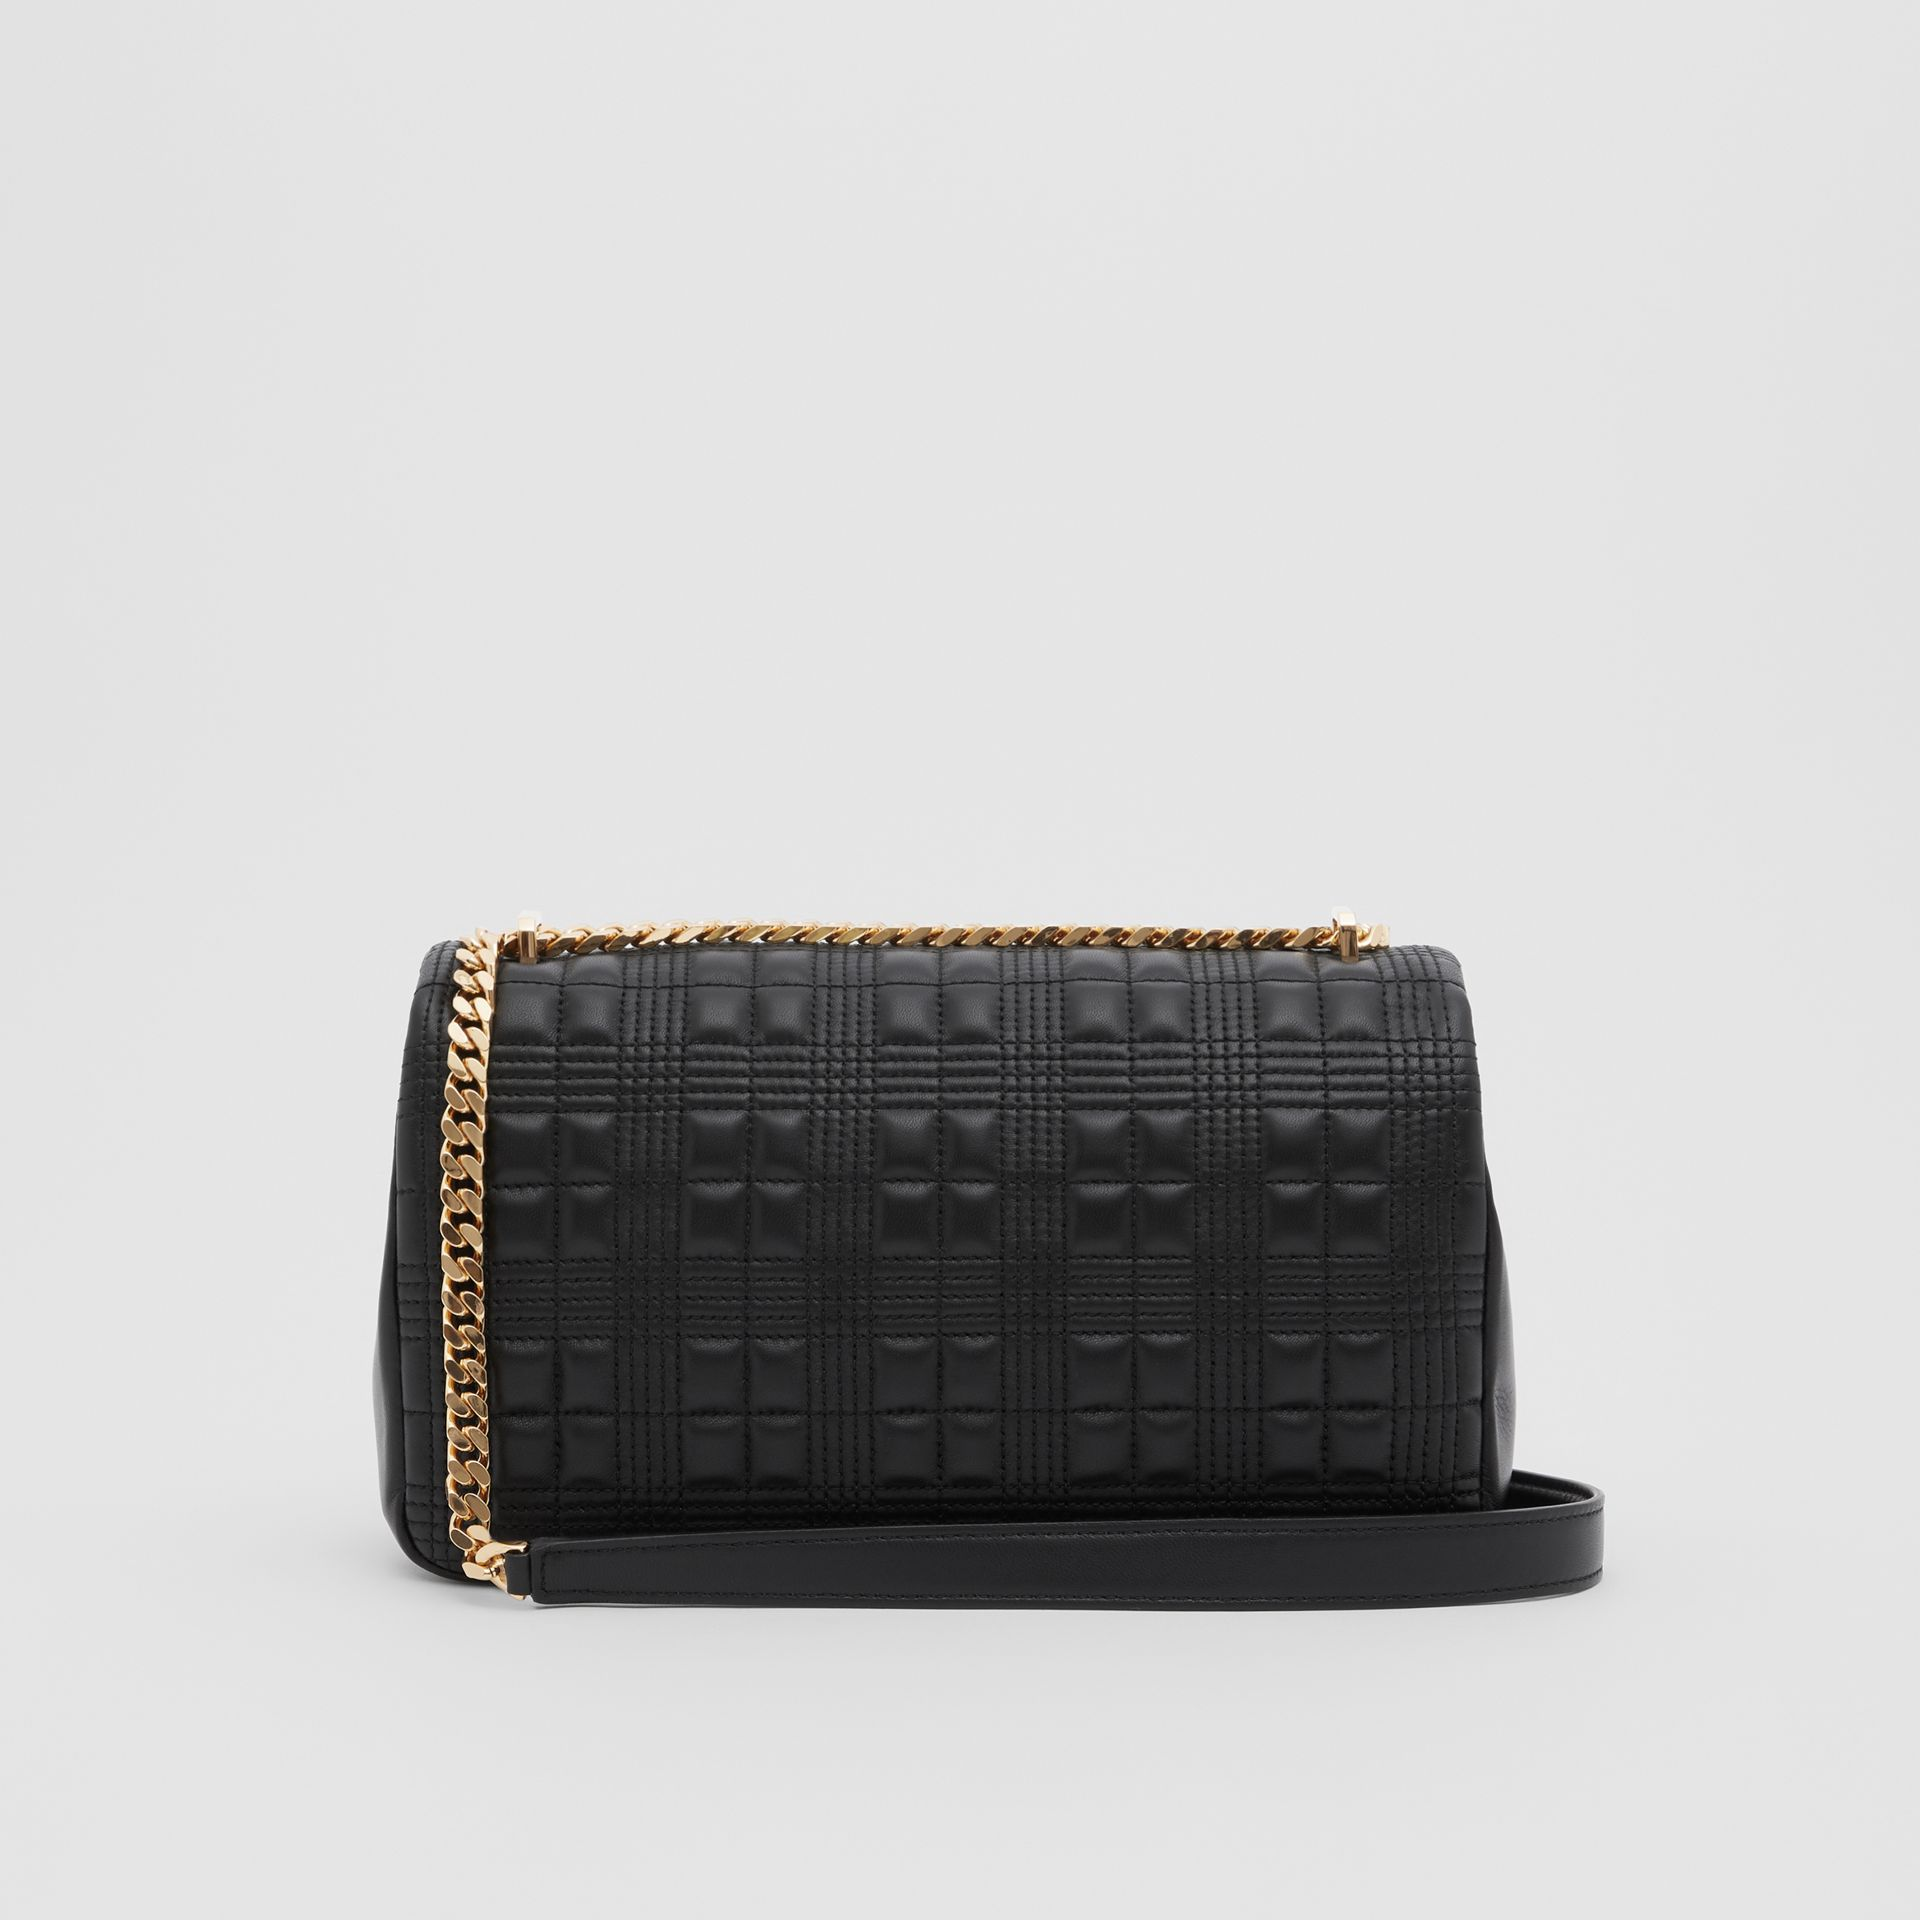 Medium Quilted Lambskin Lola Bag in Black - Women | Burberry Hong Kong S.A.R - gallery image 7